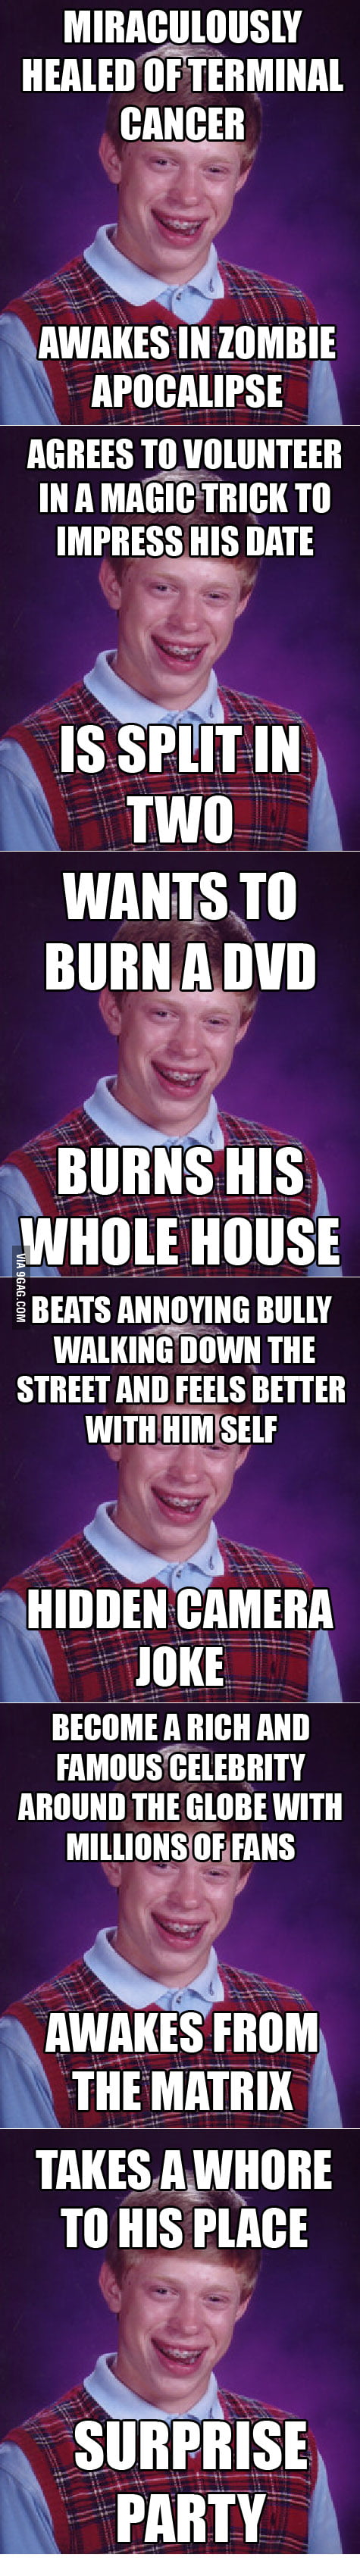 More bad luck to Brian